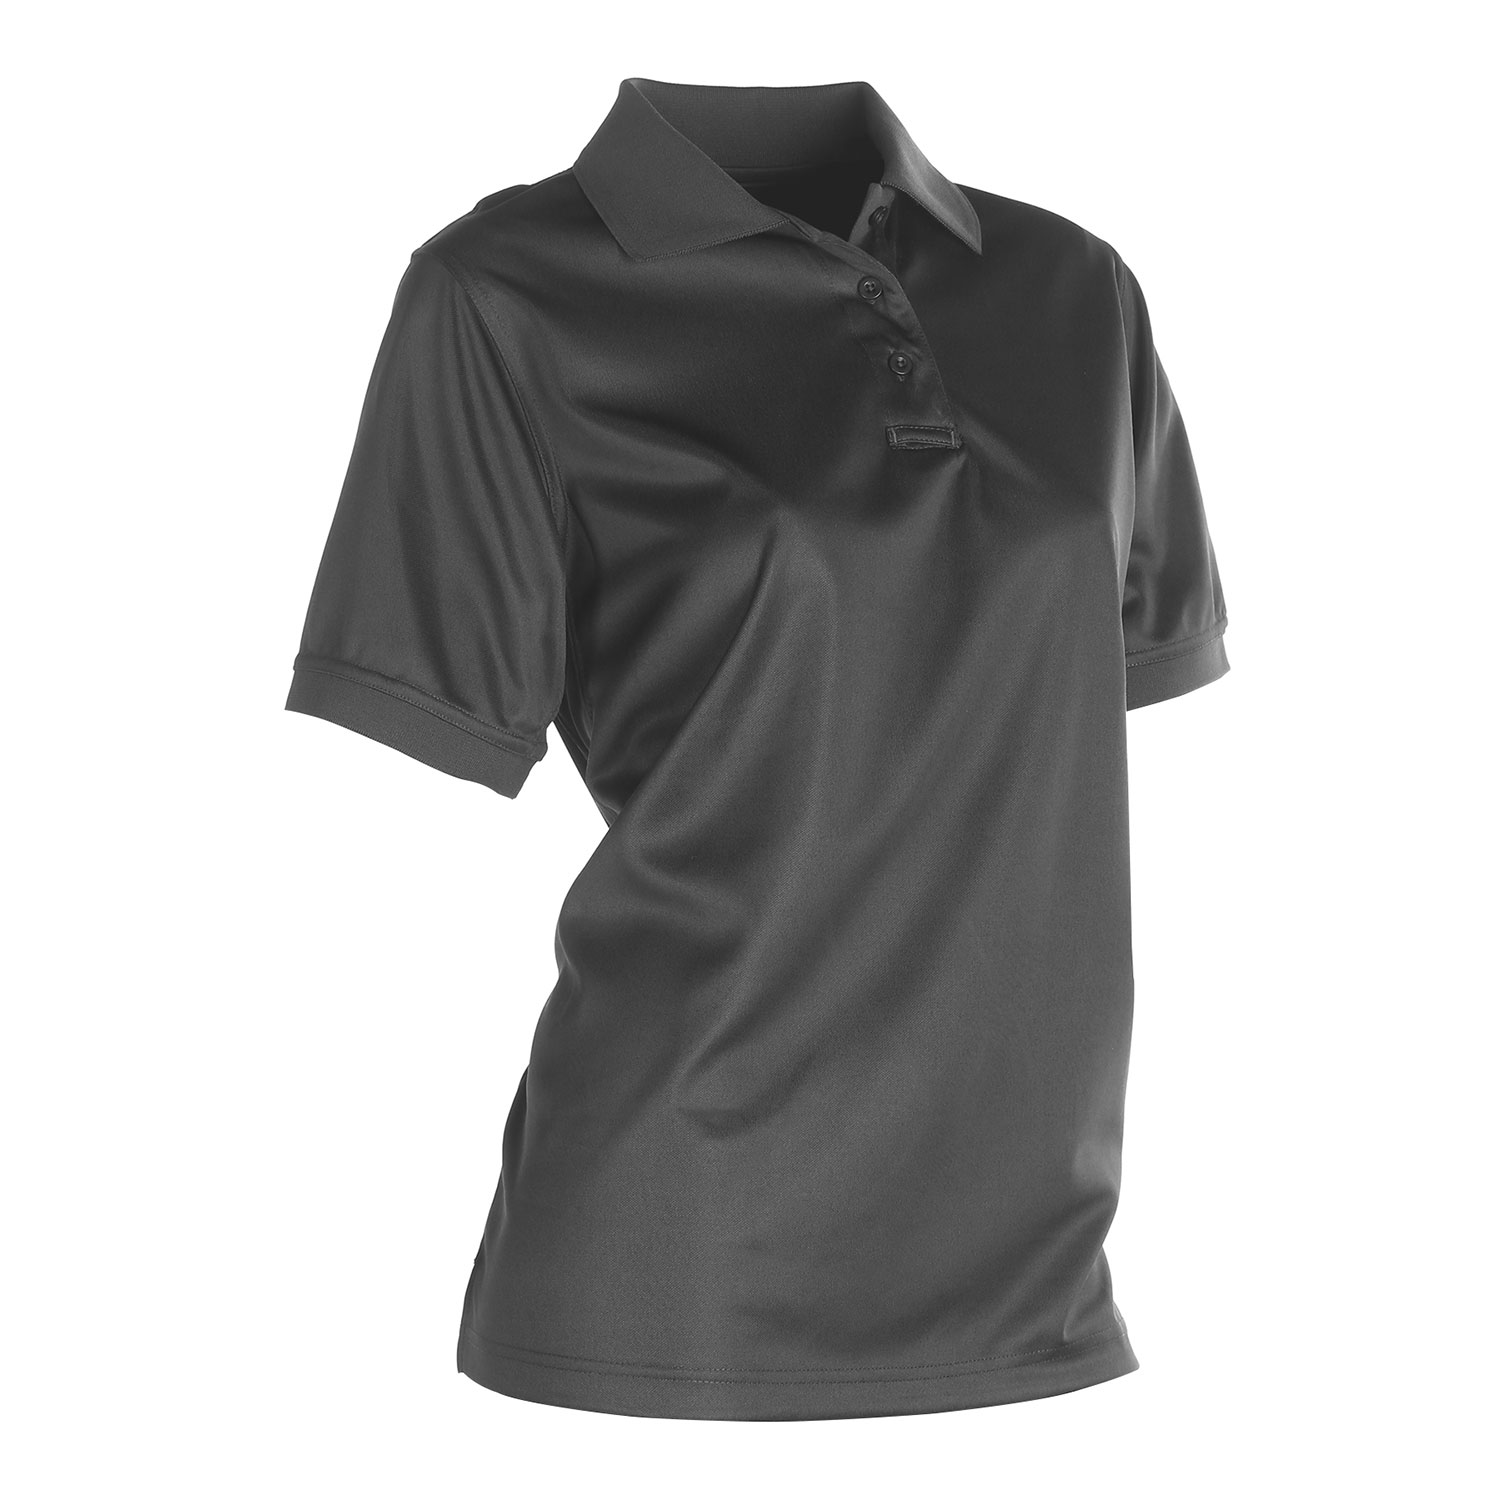 Galls Women's G-Tac Tactical Performance Polo